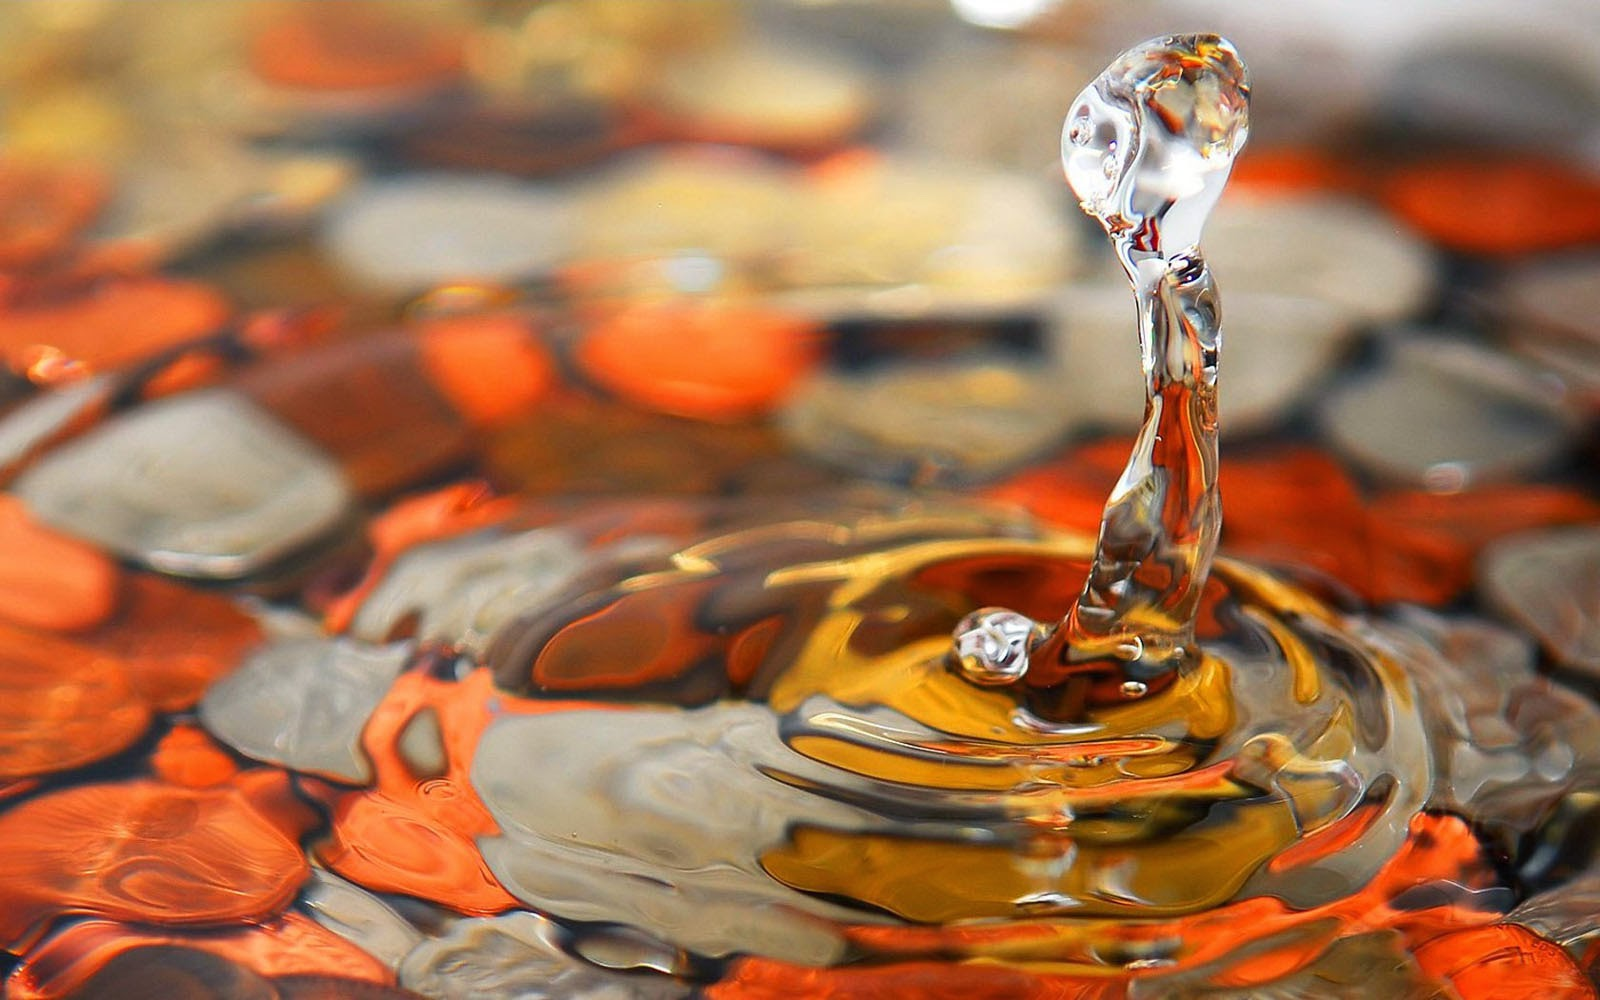 Tag Water Drop Wallpapers Backgrounds Photos Images And Pictures For Free